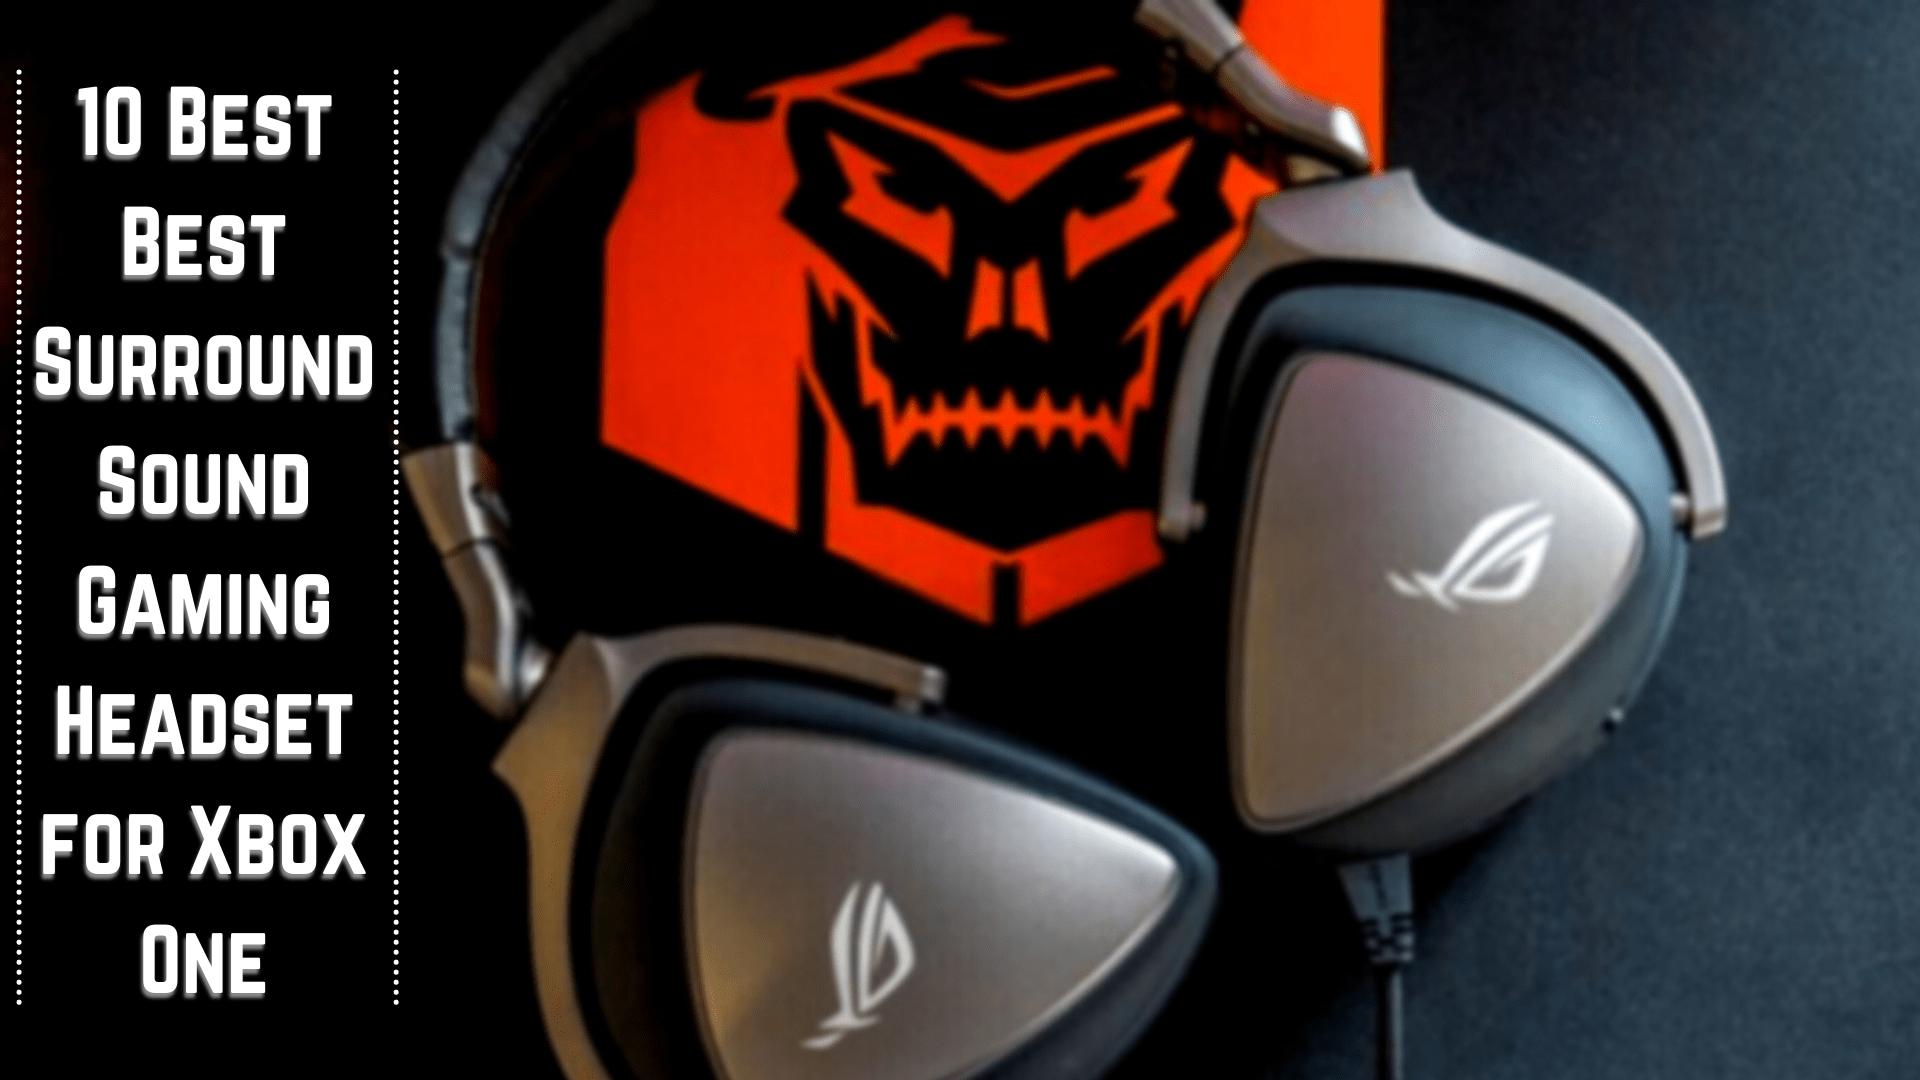 Best Surround Sound Gaming Headset for Xbox One